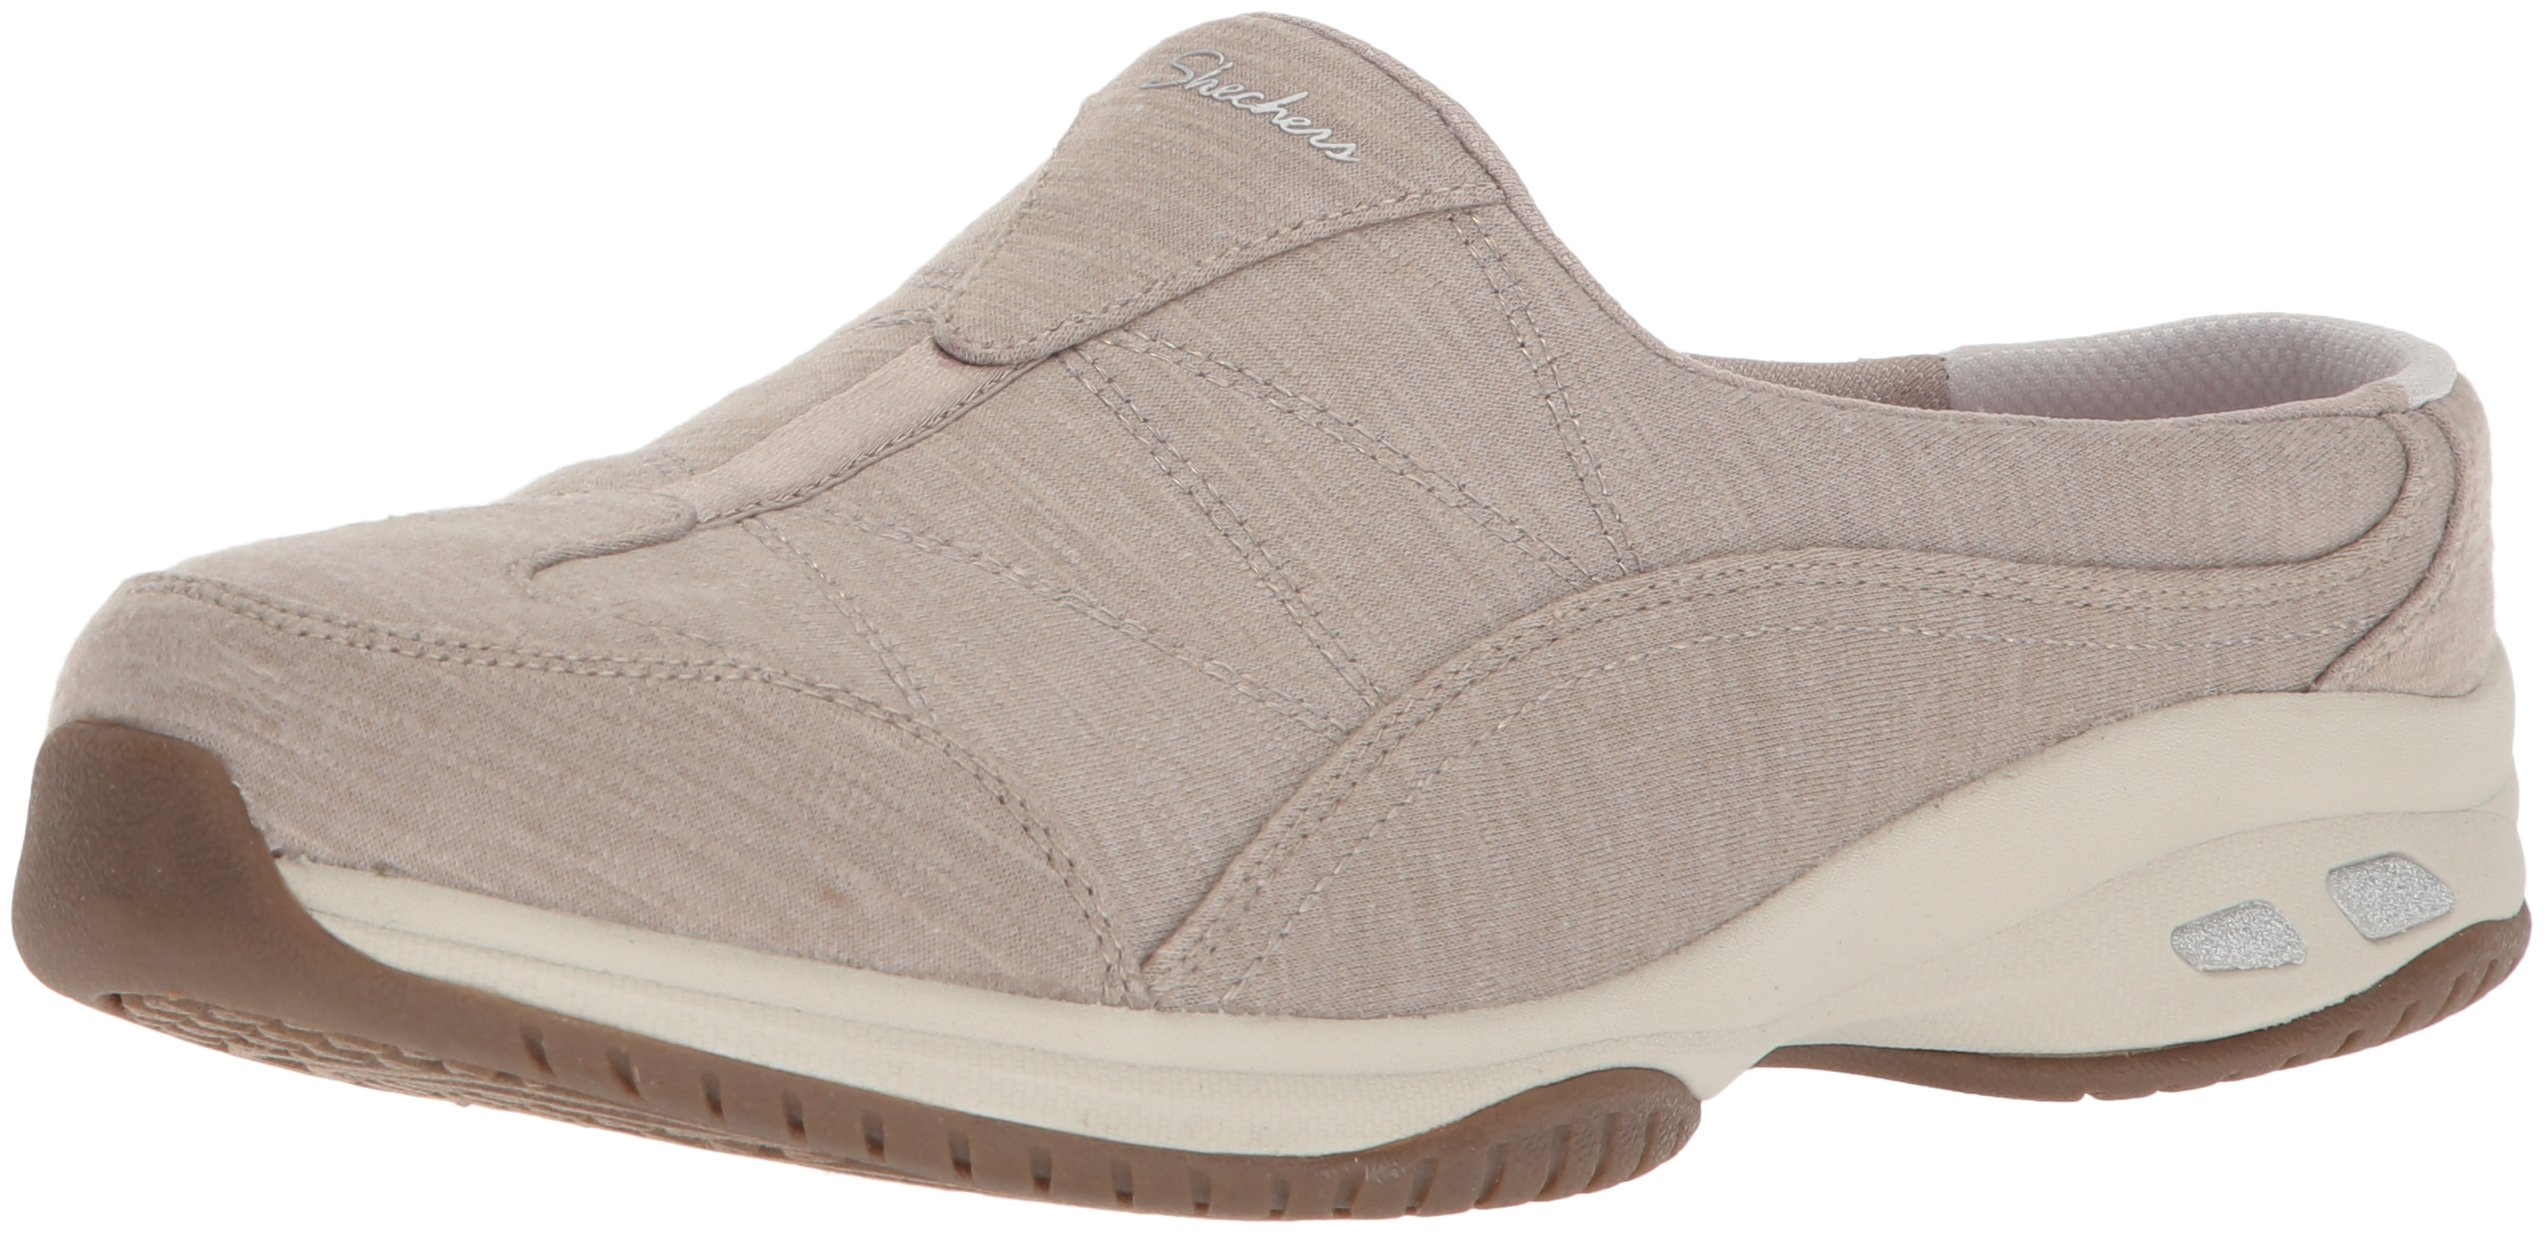 Skechers Women's Commute-Carpool-Heathered Deco Stitch Mule, Taupe, 10 W US